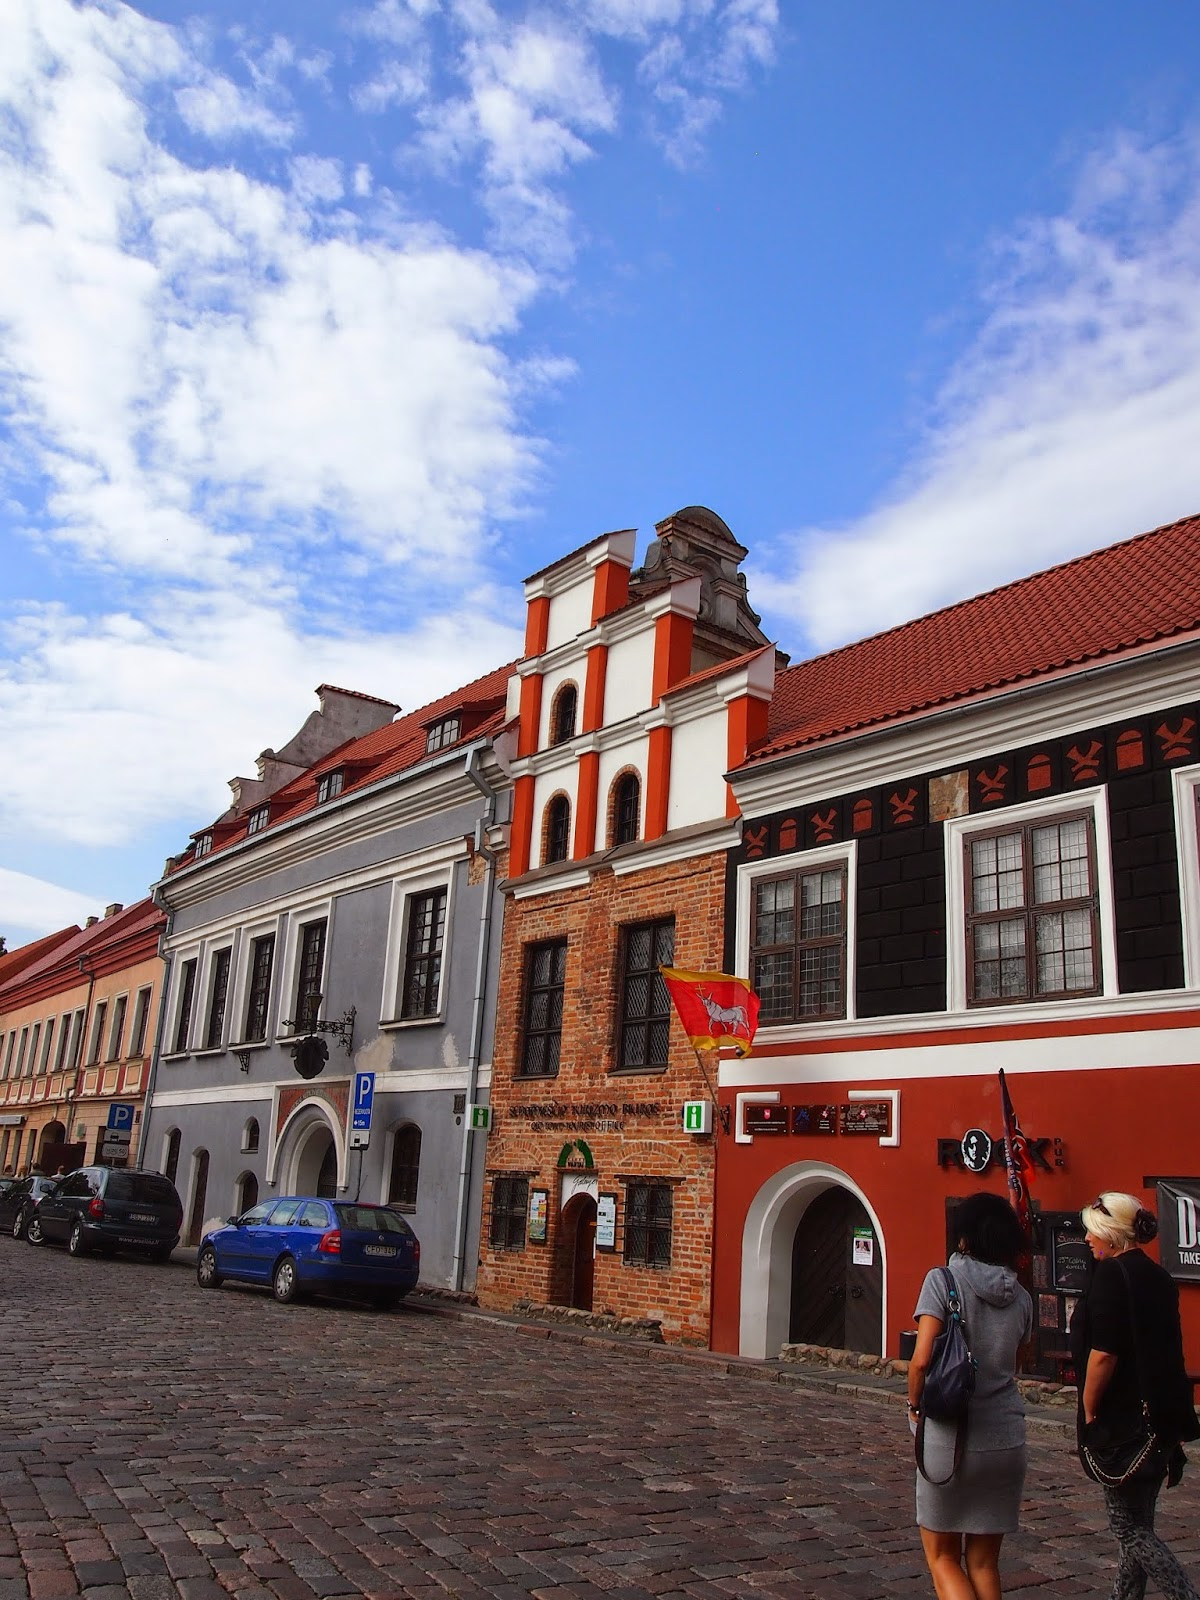 bright blue skies and red buildings in the Kaunas old town